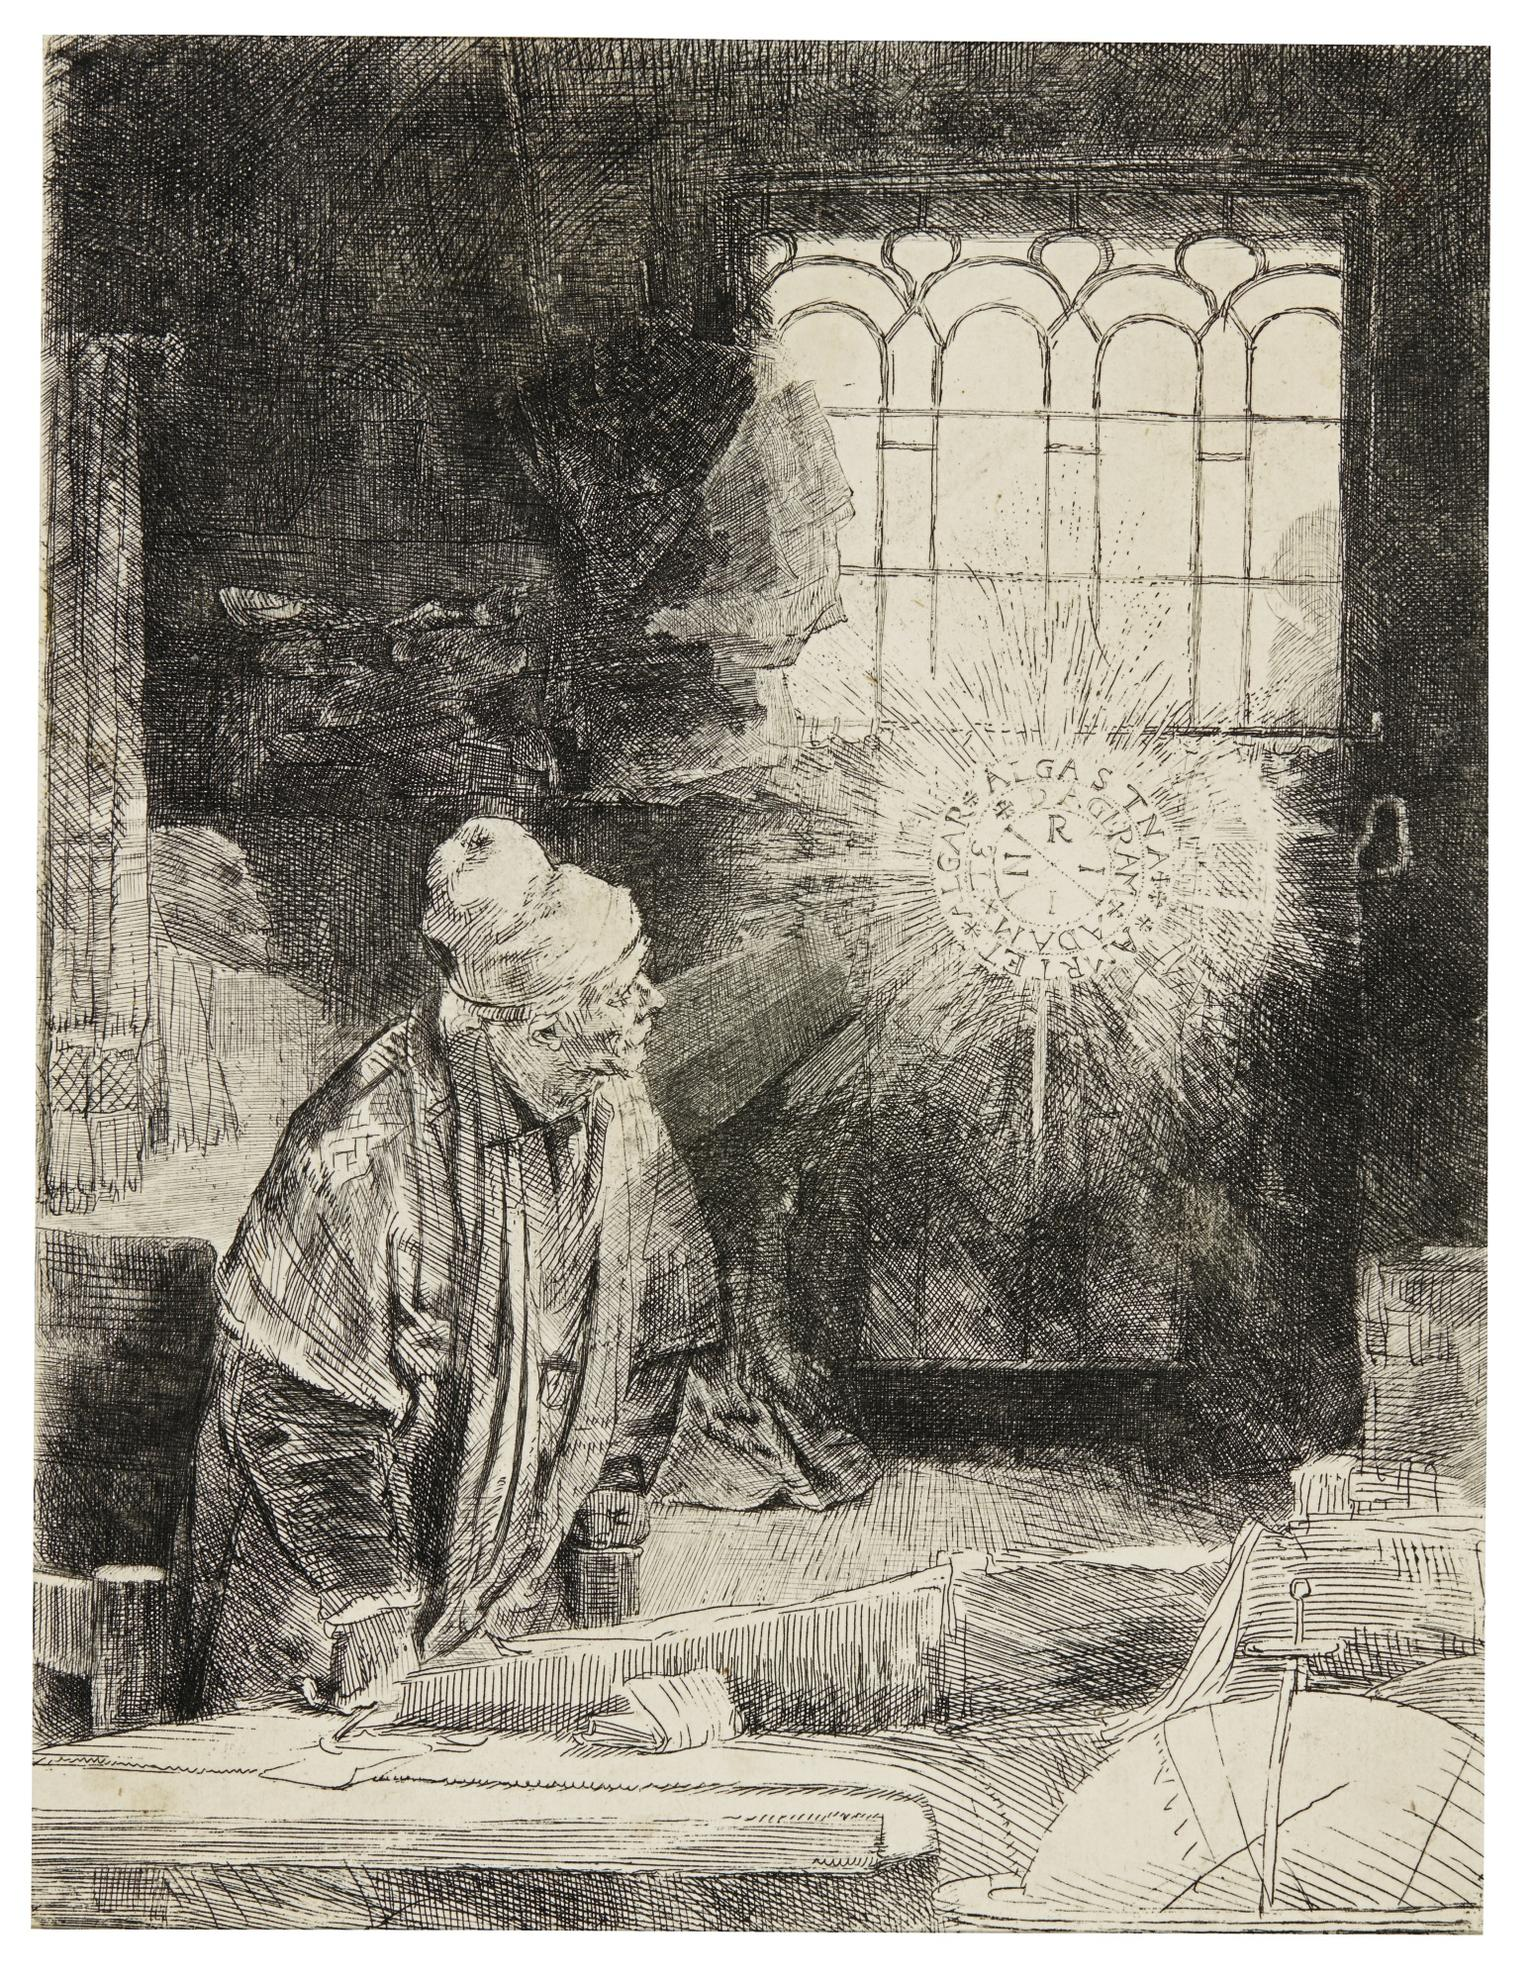 Rembrandt van Rijn-A Scholar In His Study (Faust) (B., Holl. 270; New Holl. 270; H. 260)-1652